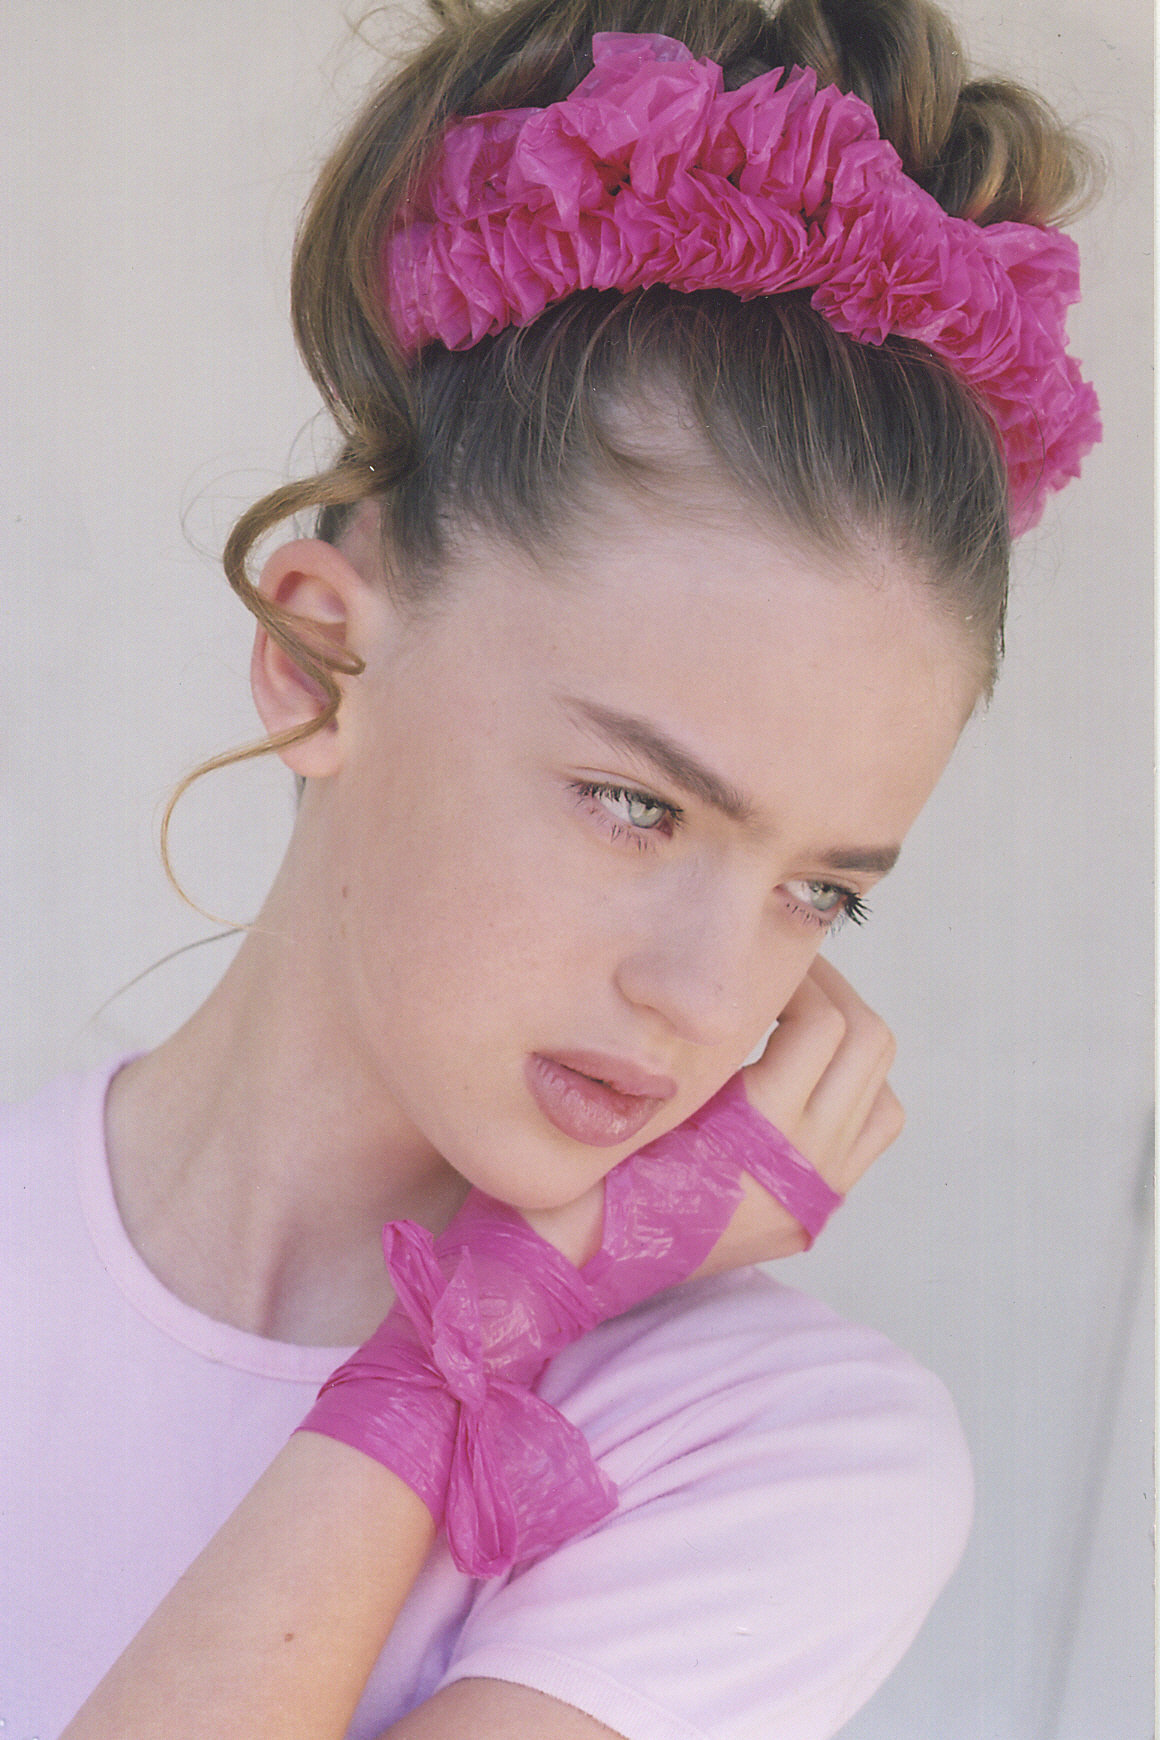 NIKI JANSEN at age 12, a child beauty grew up to be a runway and print star.